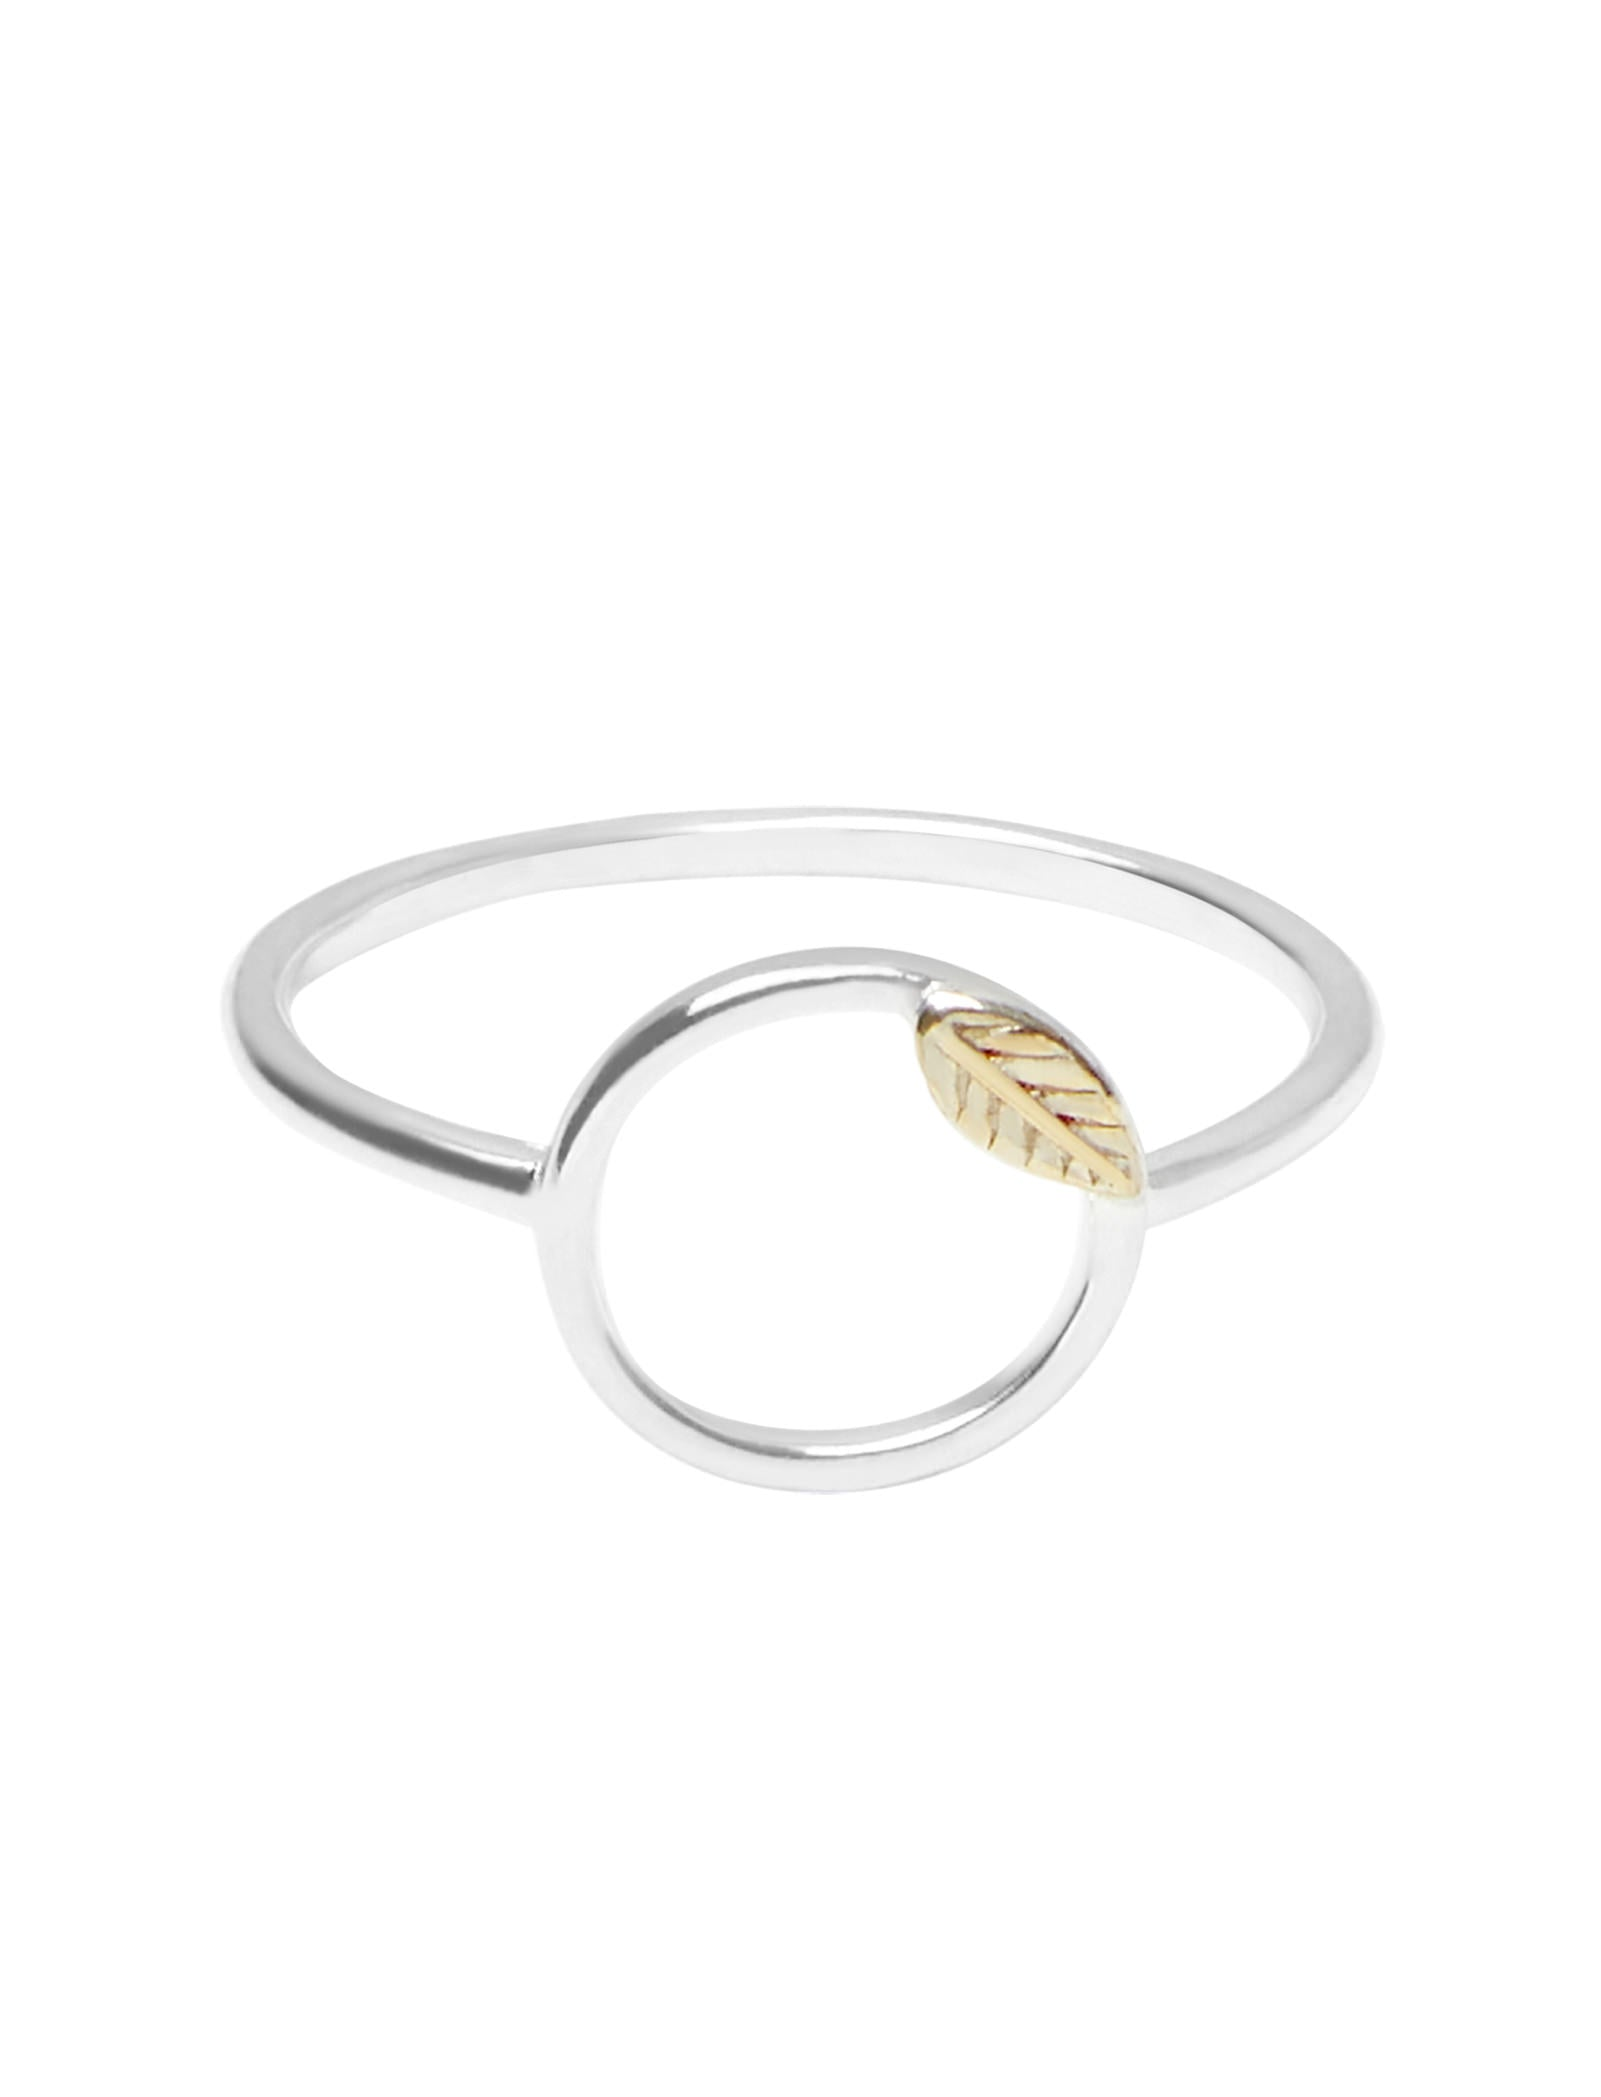 Pastiche  Spring Breeze Ring - R1218YG-N